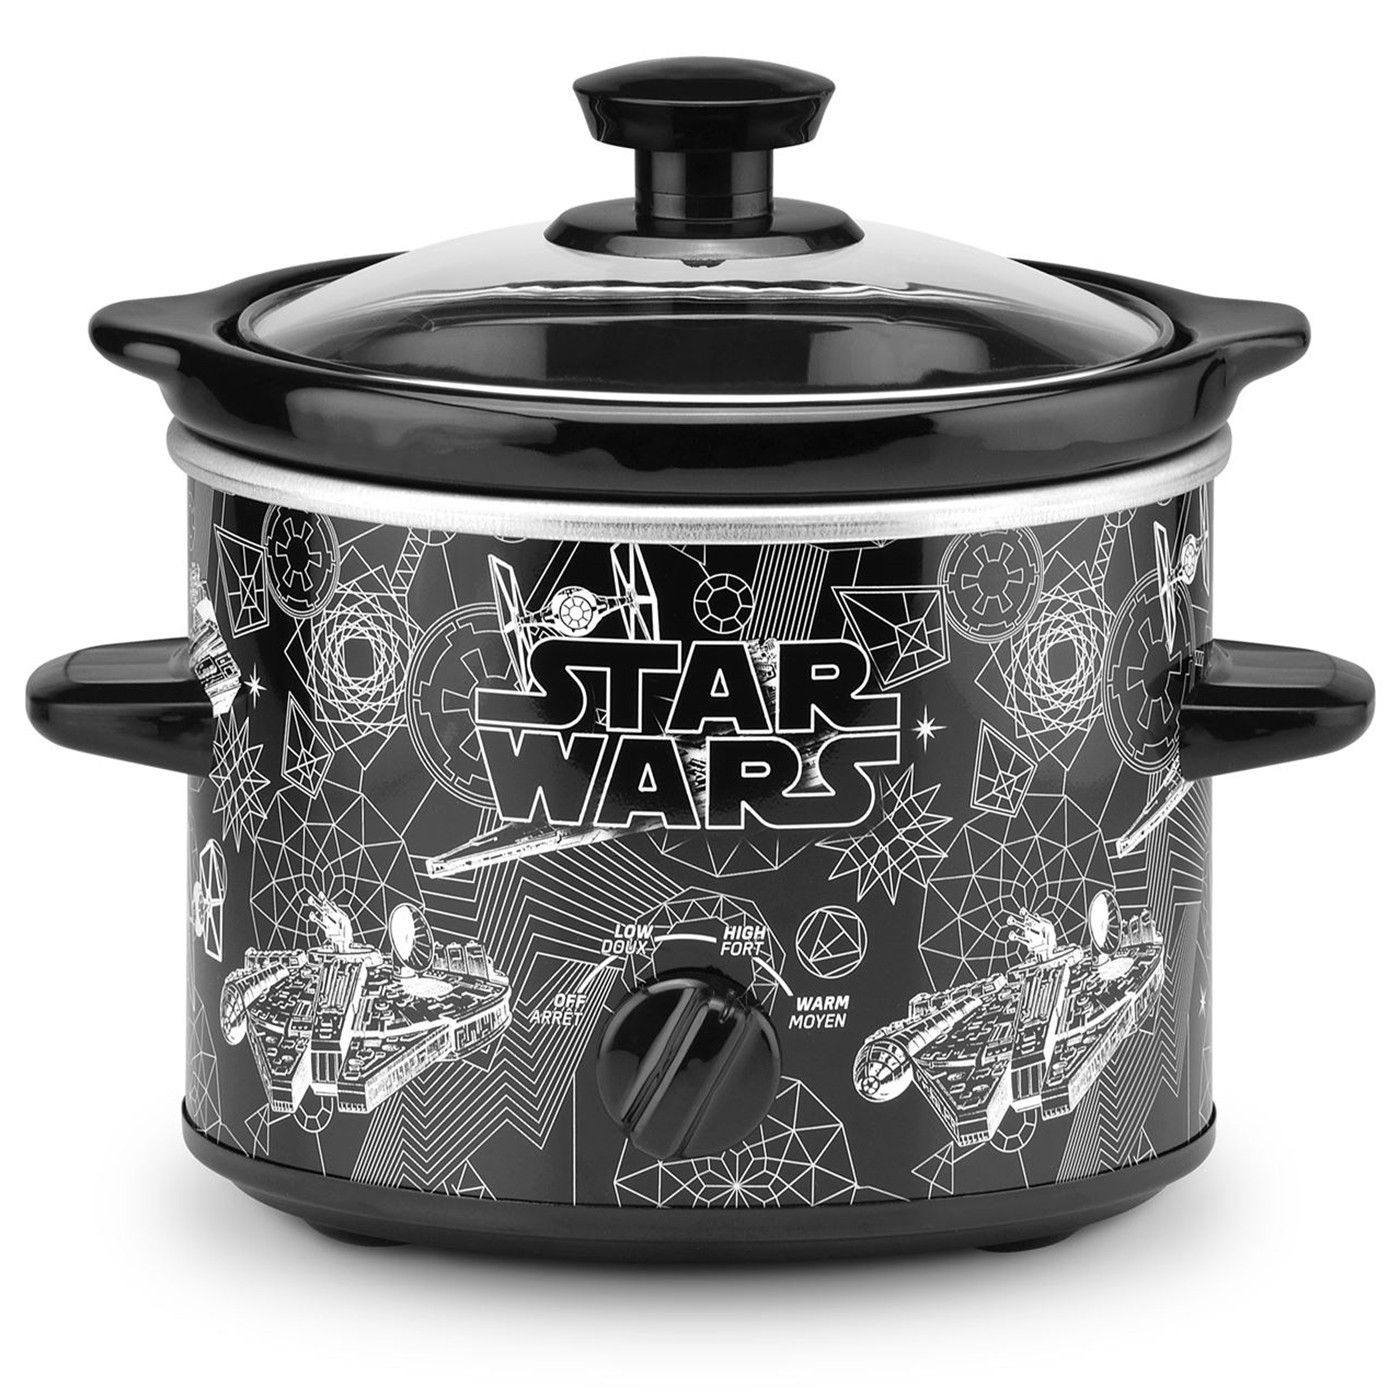 Star Wars 2-Quart Slow Cooker